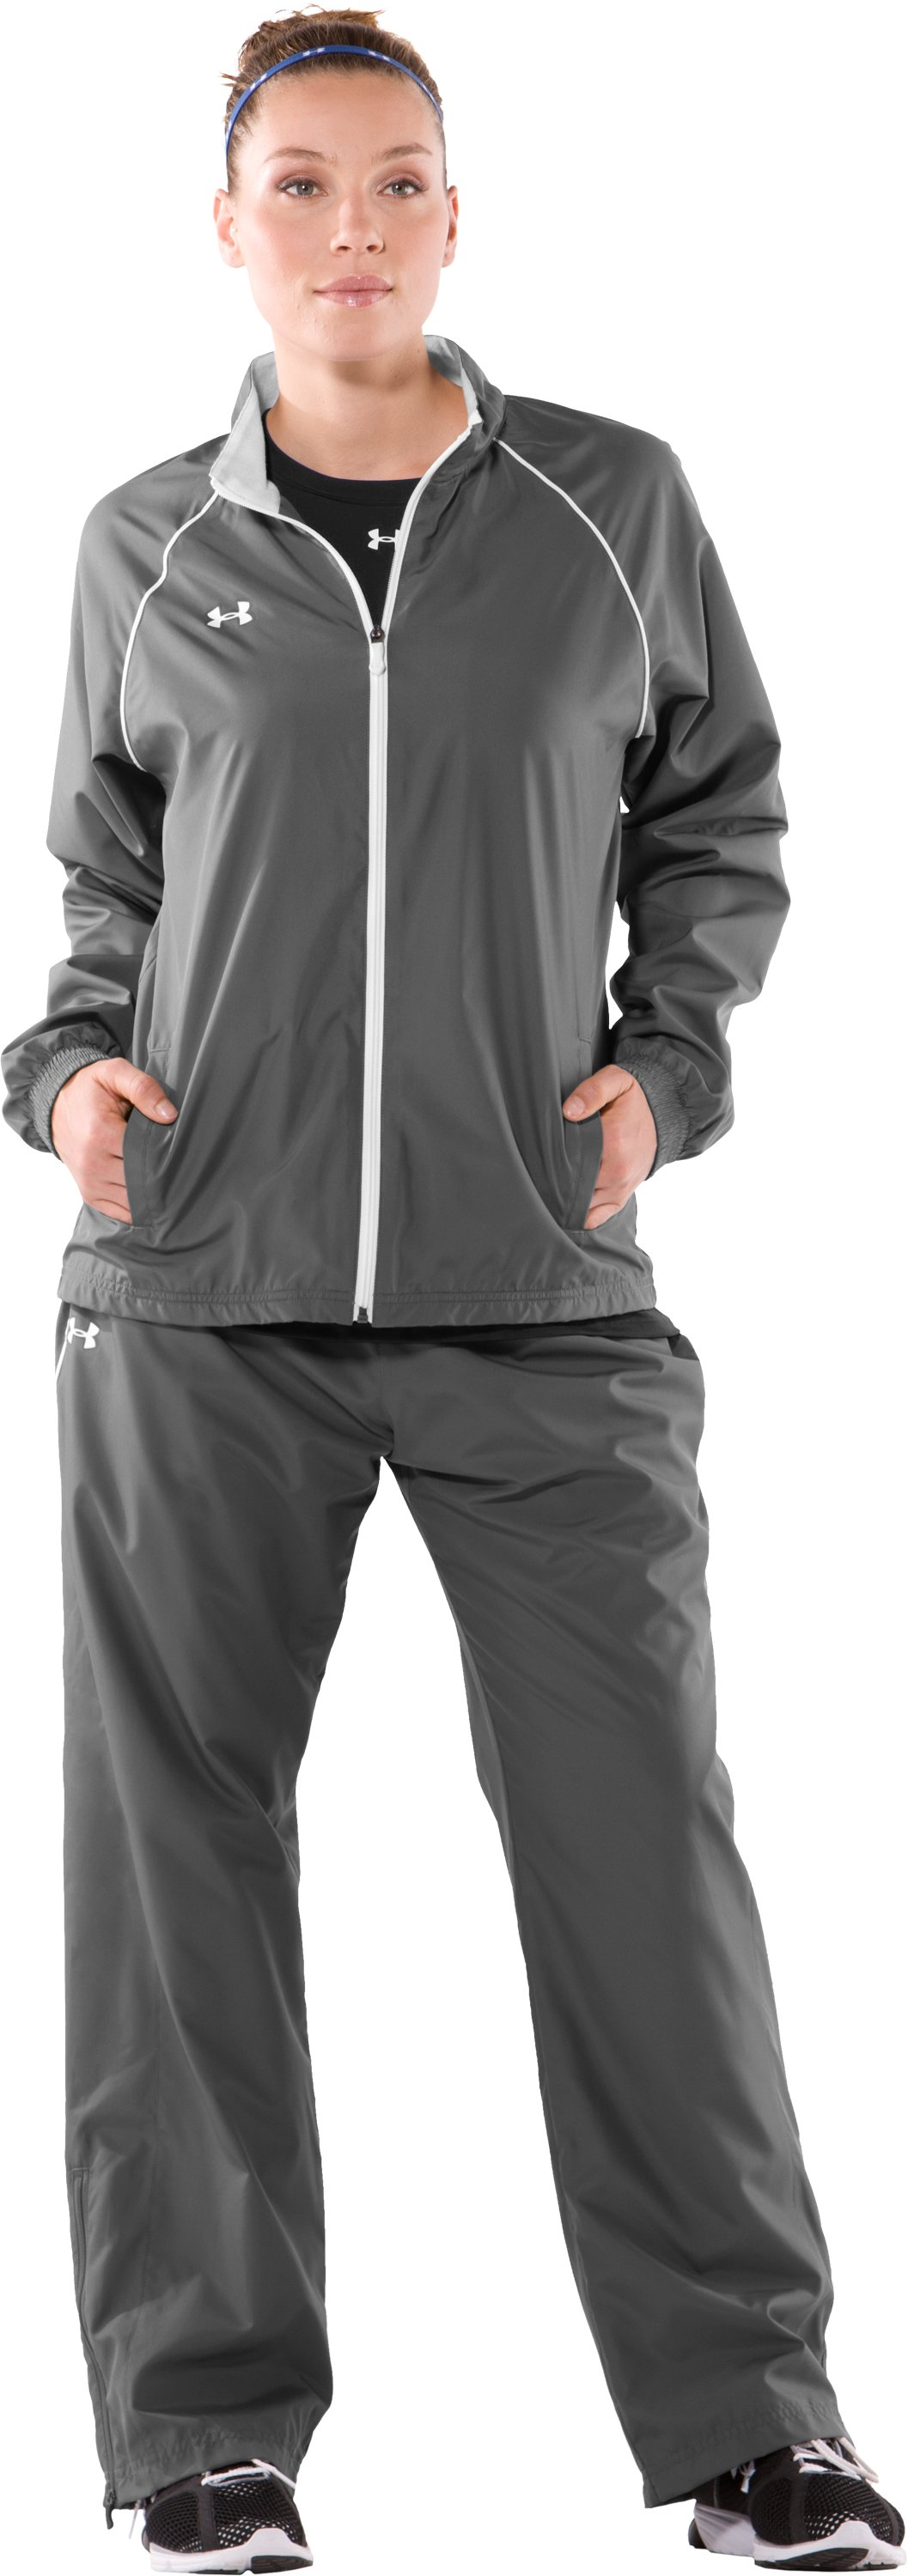 Women's Advance Woven Warm-Up Jacket, Graphite, Front